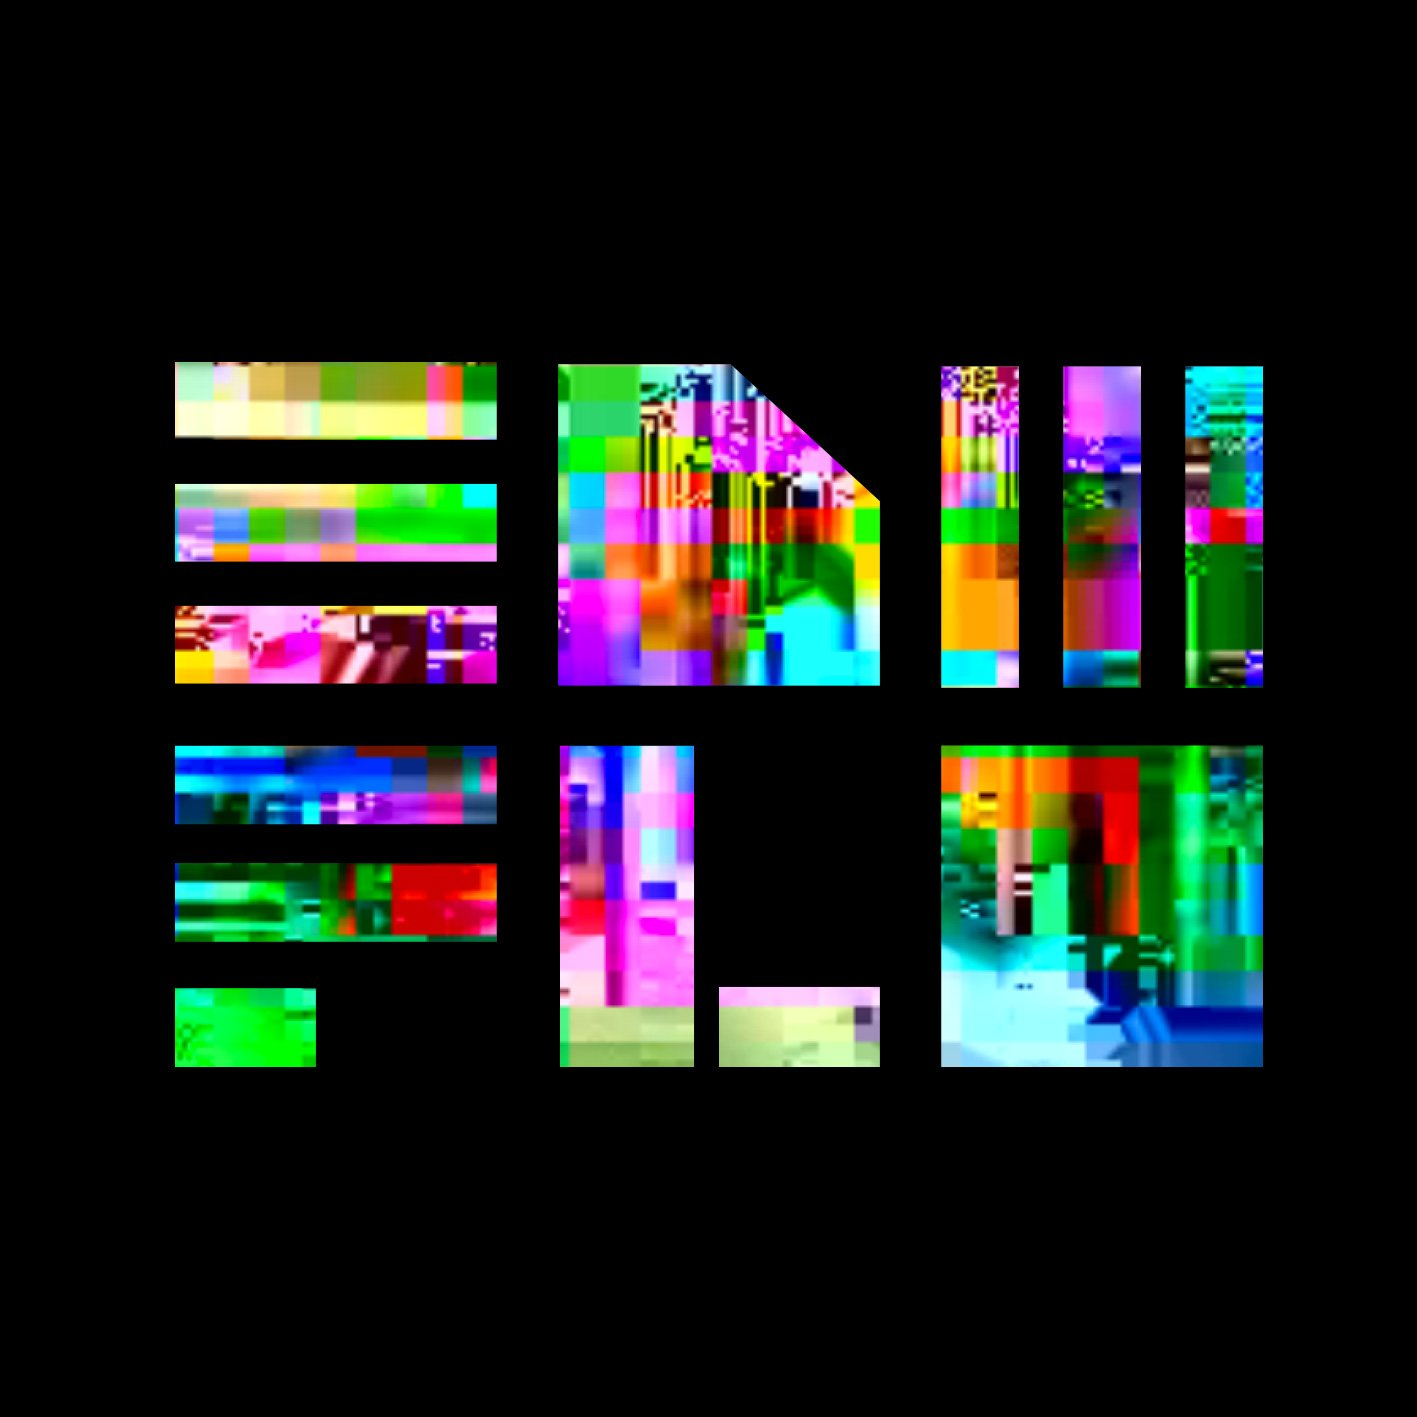 [Album] m-flo – EDM-FLO (FLAC)(Download)[2014.03.26]